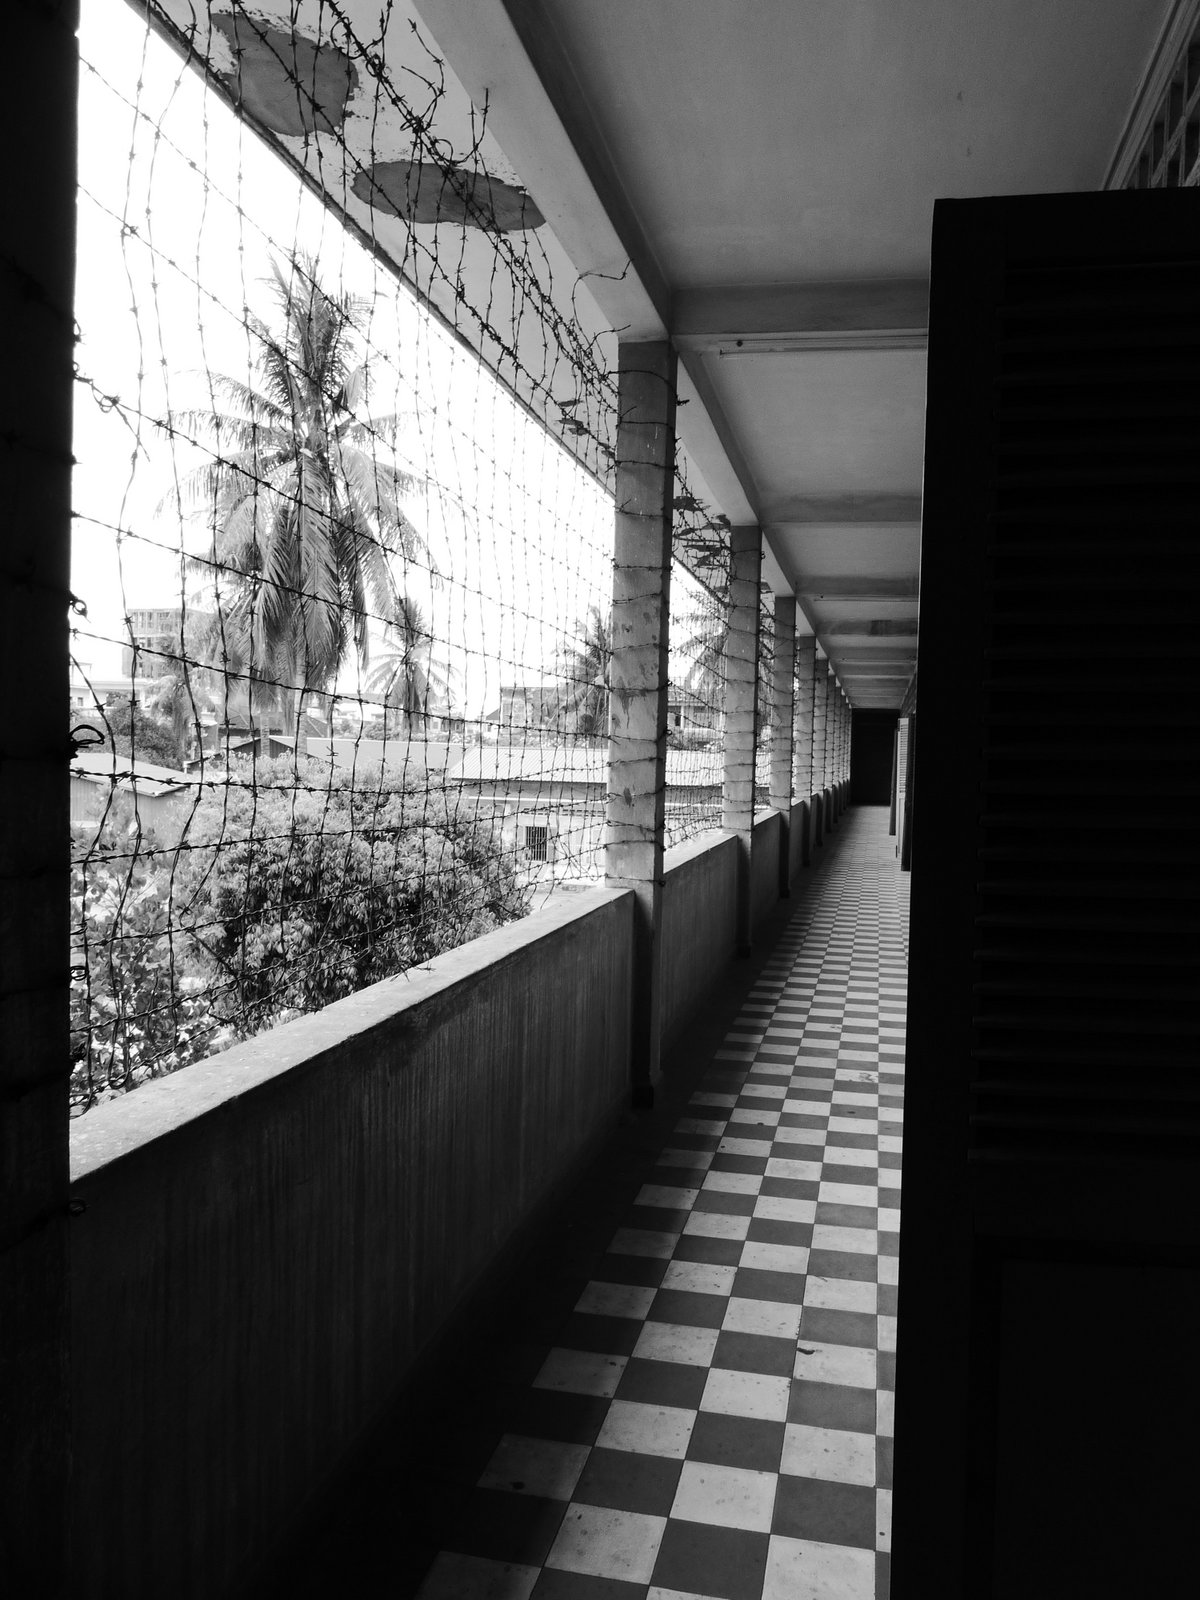 Hallway at Tuol Sleng Prison. The Khmer Rouge used barbed wire and turned classrooms into mass cells to make this former high school into a horrific prison.